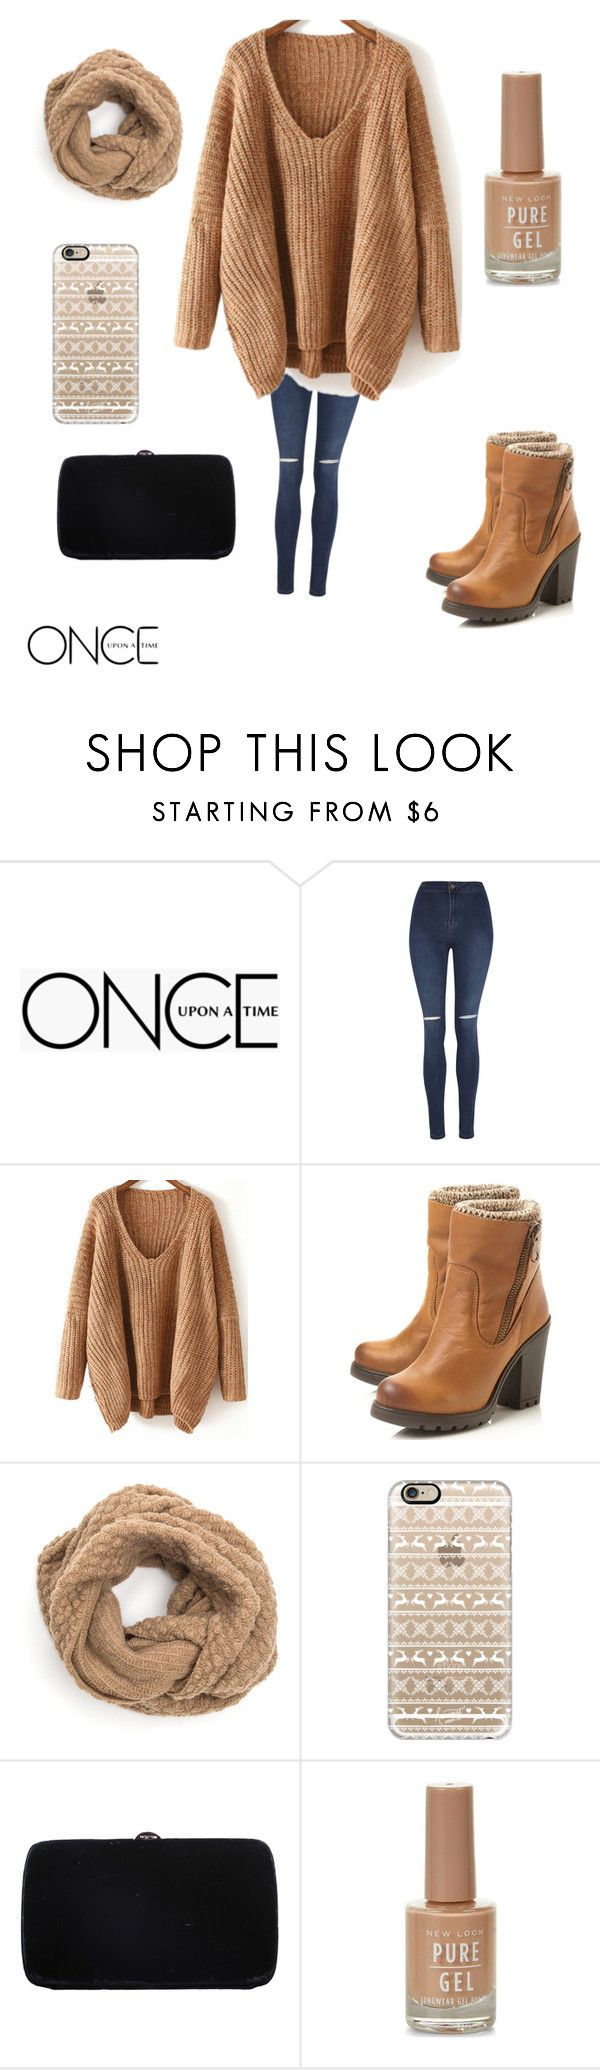 Untitled #195 by nihada106 on Polyvore featuring Once Upon a Time, George, Steve Madden, Sergio Rossi and Casetify